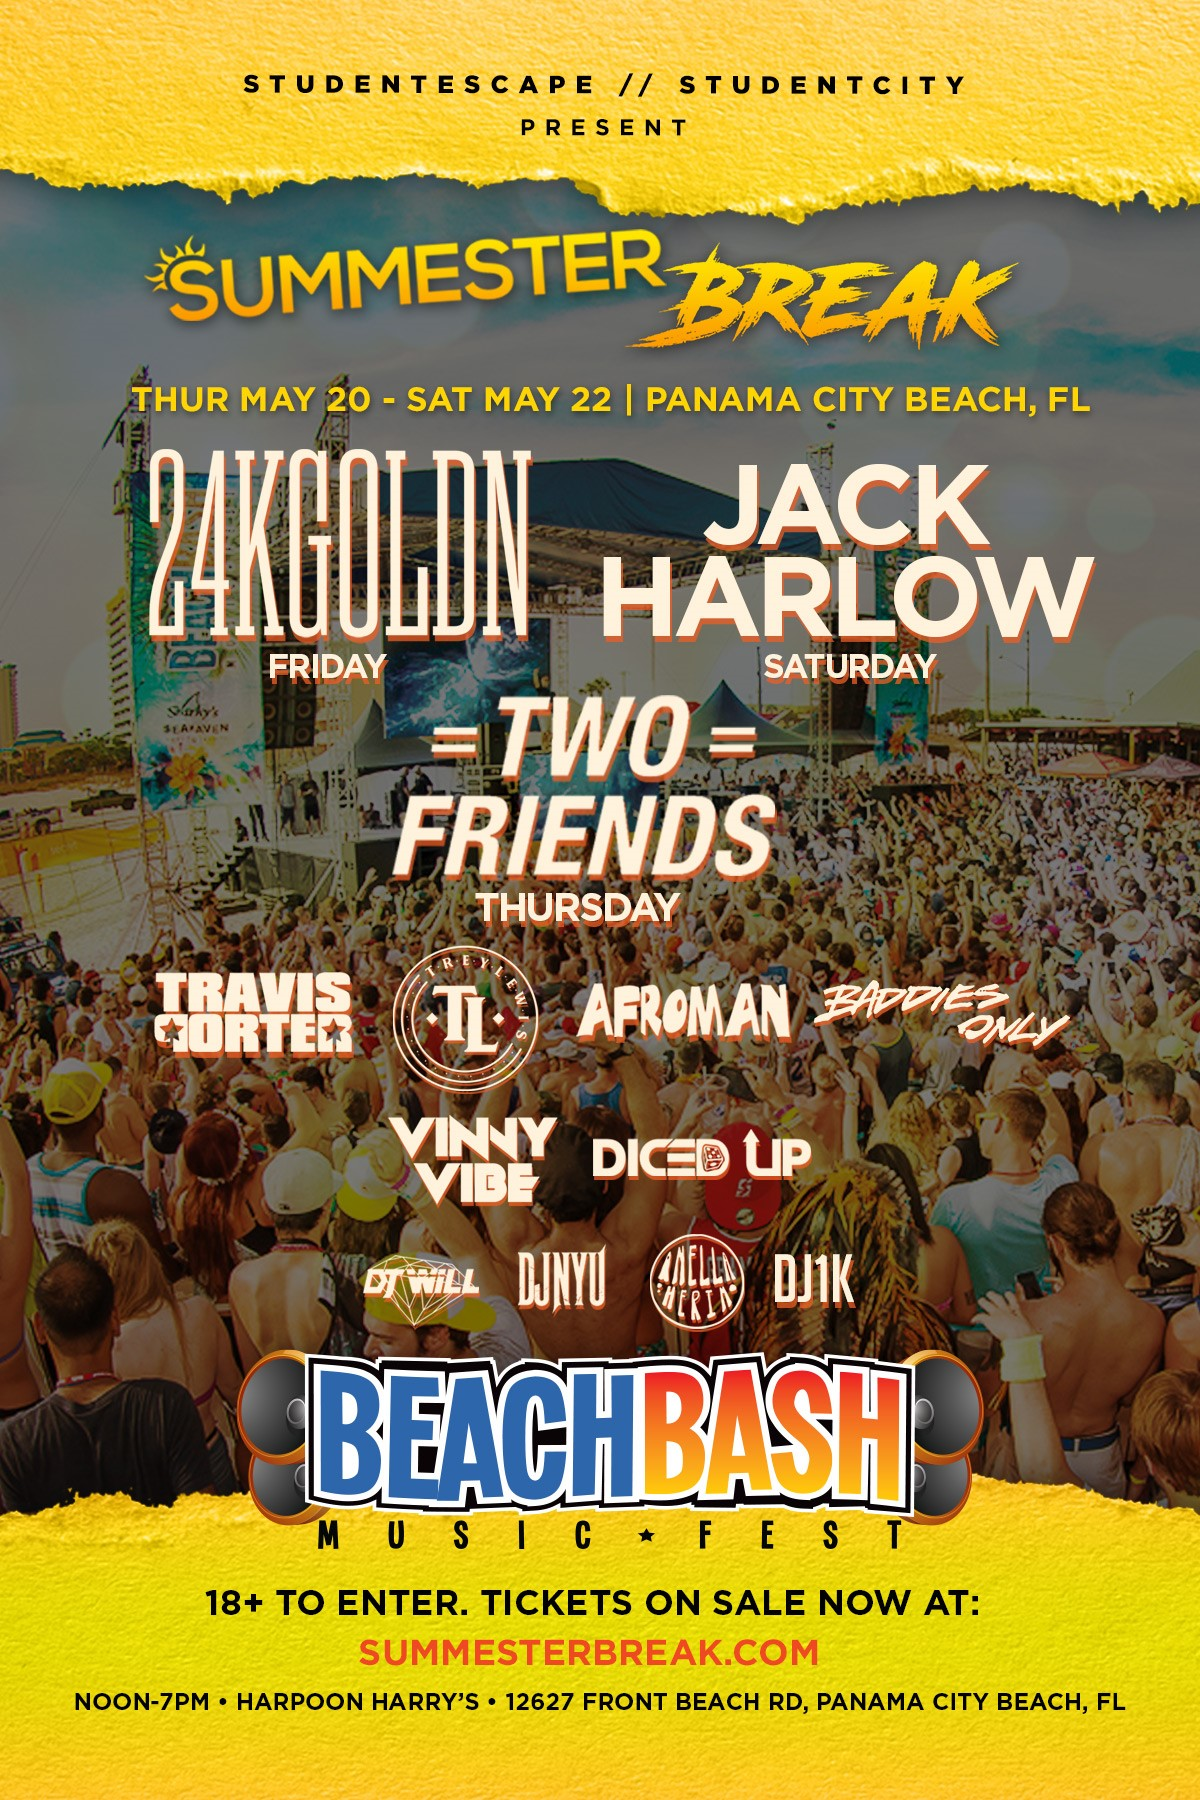 From may to september, eur. Beach Bash Music Fest Presents Summester Break Music Festival May 19 22 In Panama City Beach Florida Featuring Jack Harlow And 24kgoldn Beach Bash Music Fest